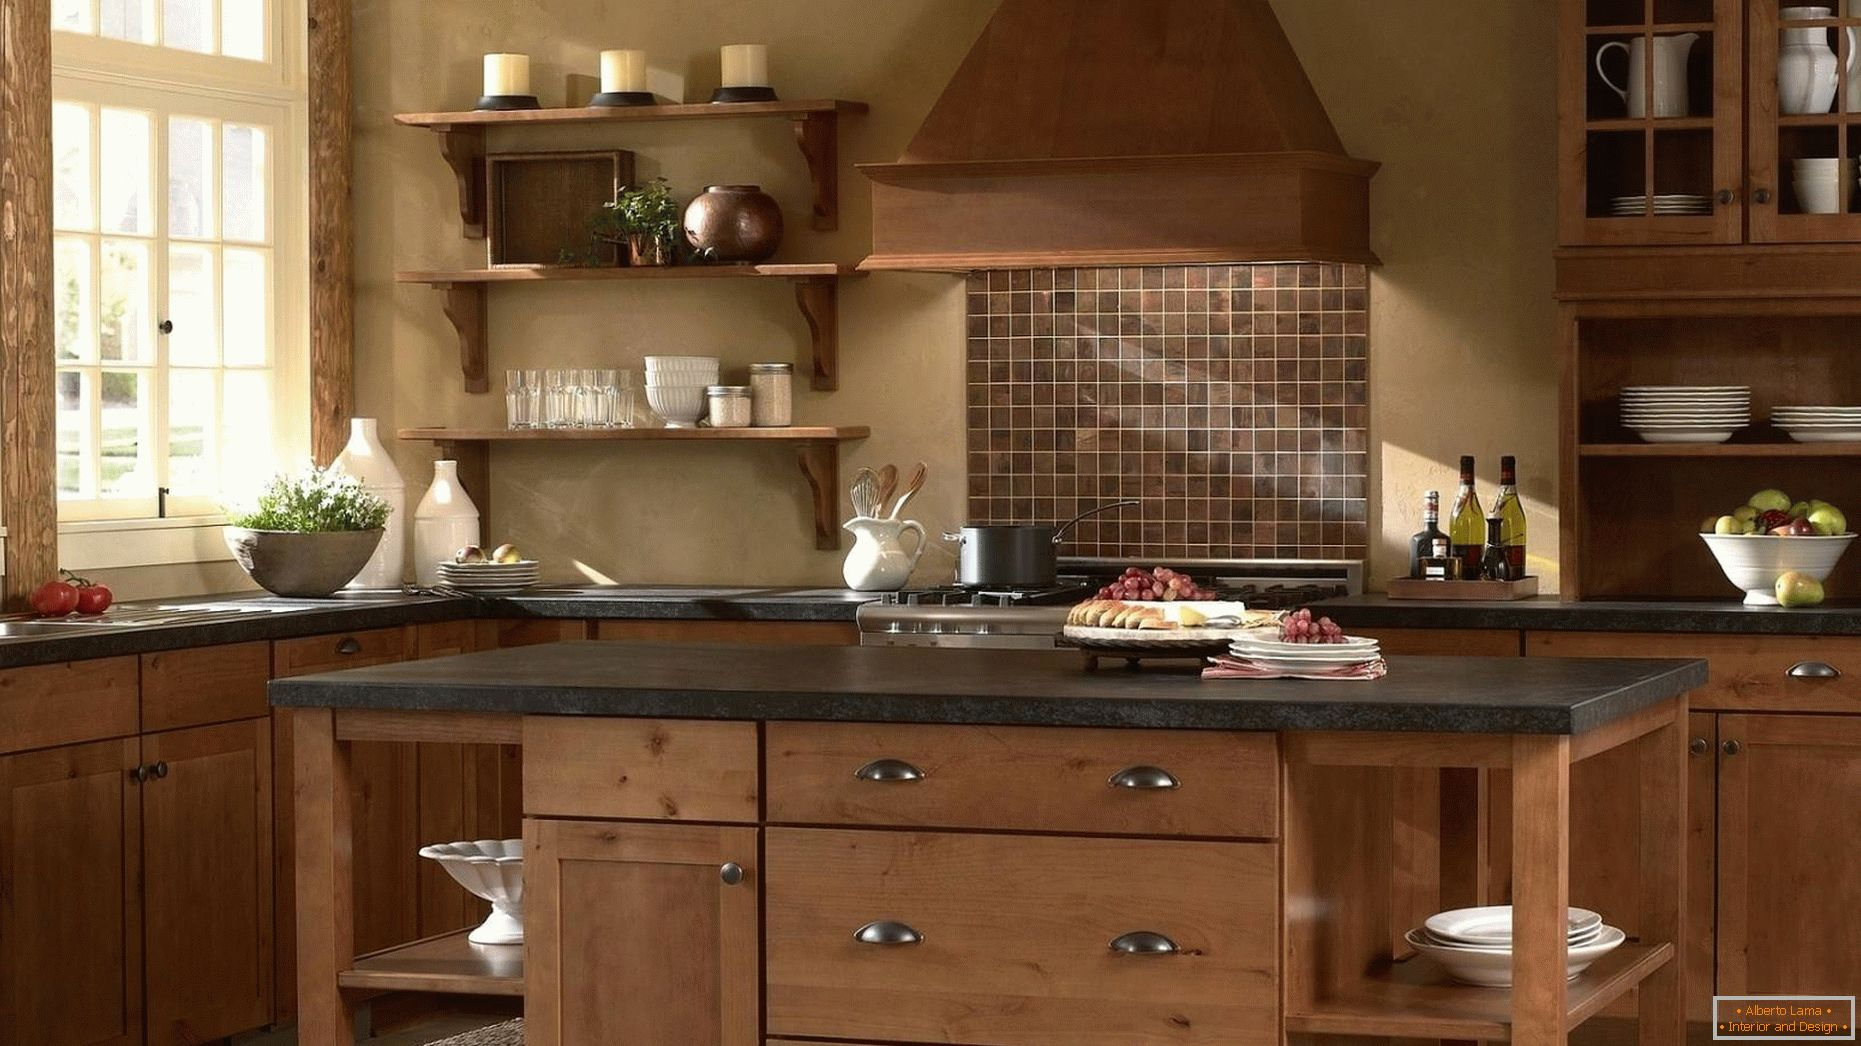 Kitchens made of wood are classic!